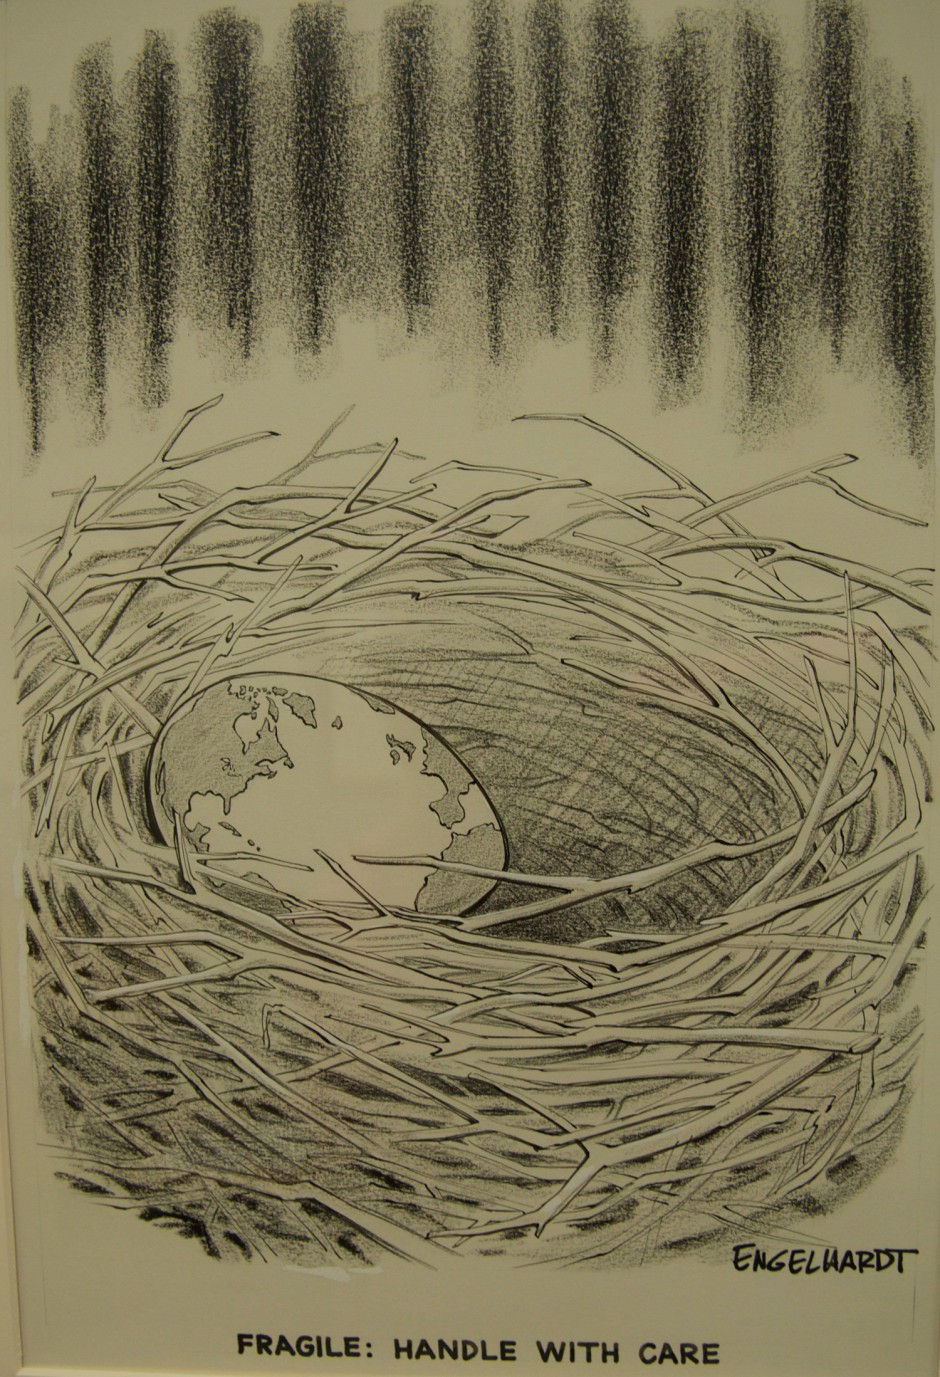 """A 1971 cartoon representing the earth as an egg in a bird's nest. The caption reads, """"Fragile: Handle with Care."""""""